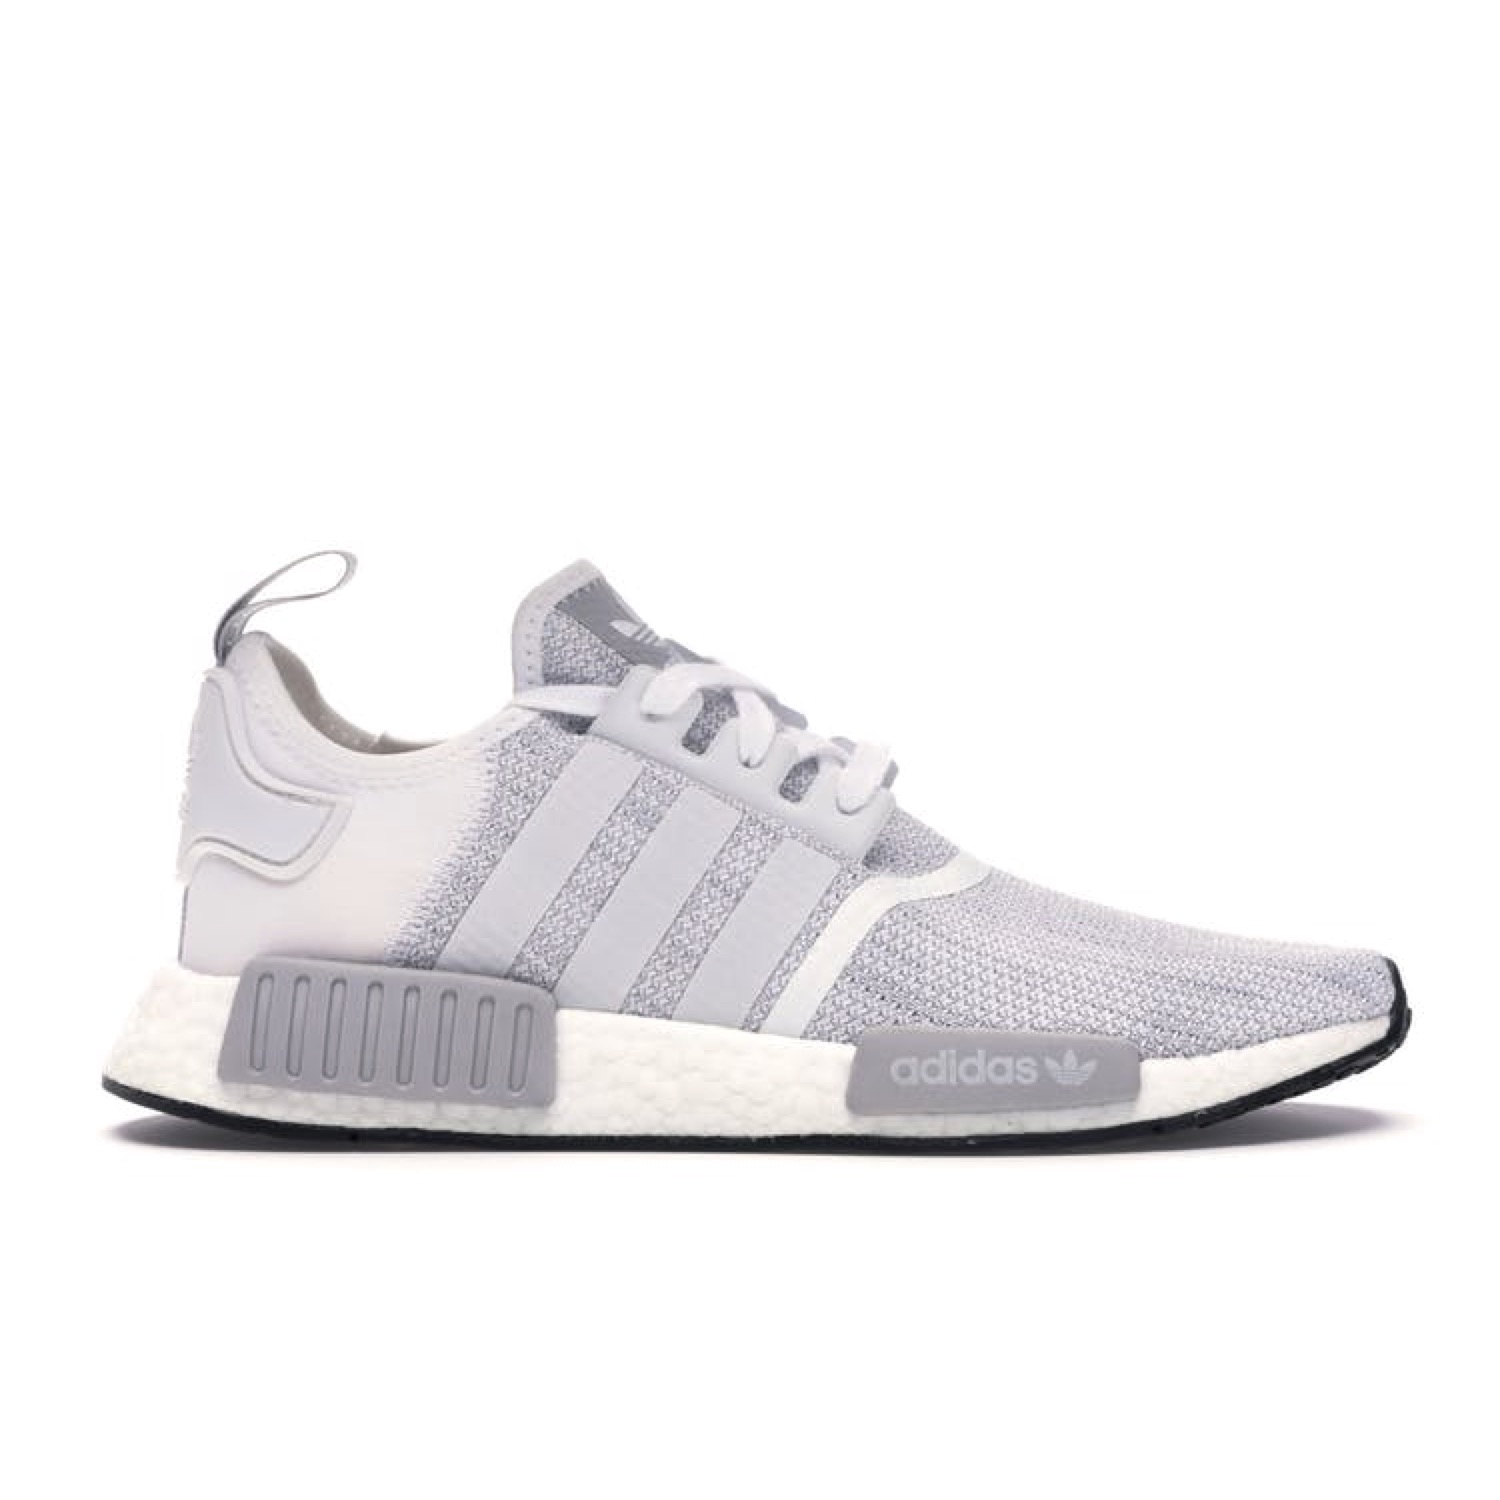 hot sale online 78179 e9f9d Adidas Nmd R1 Blizzard White Grey